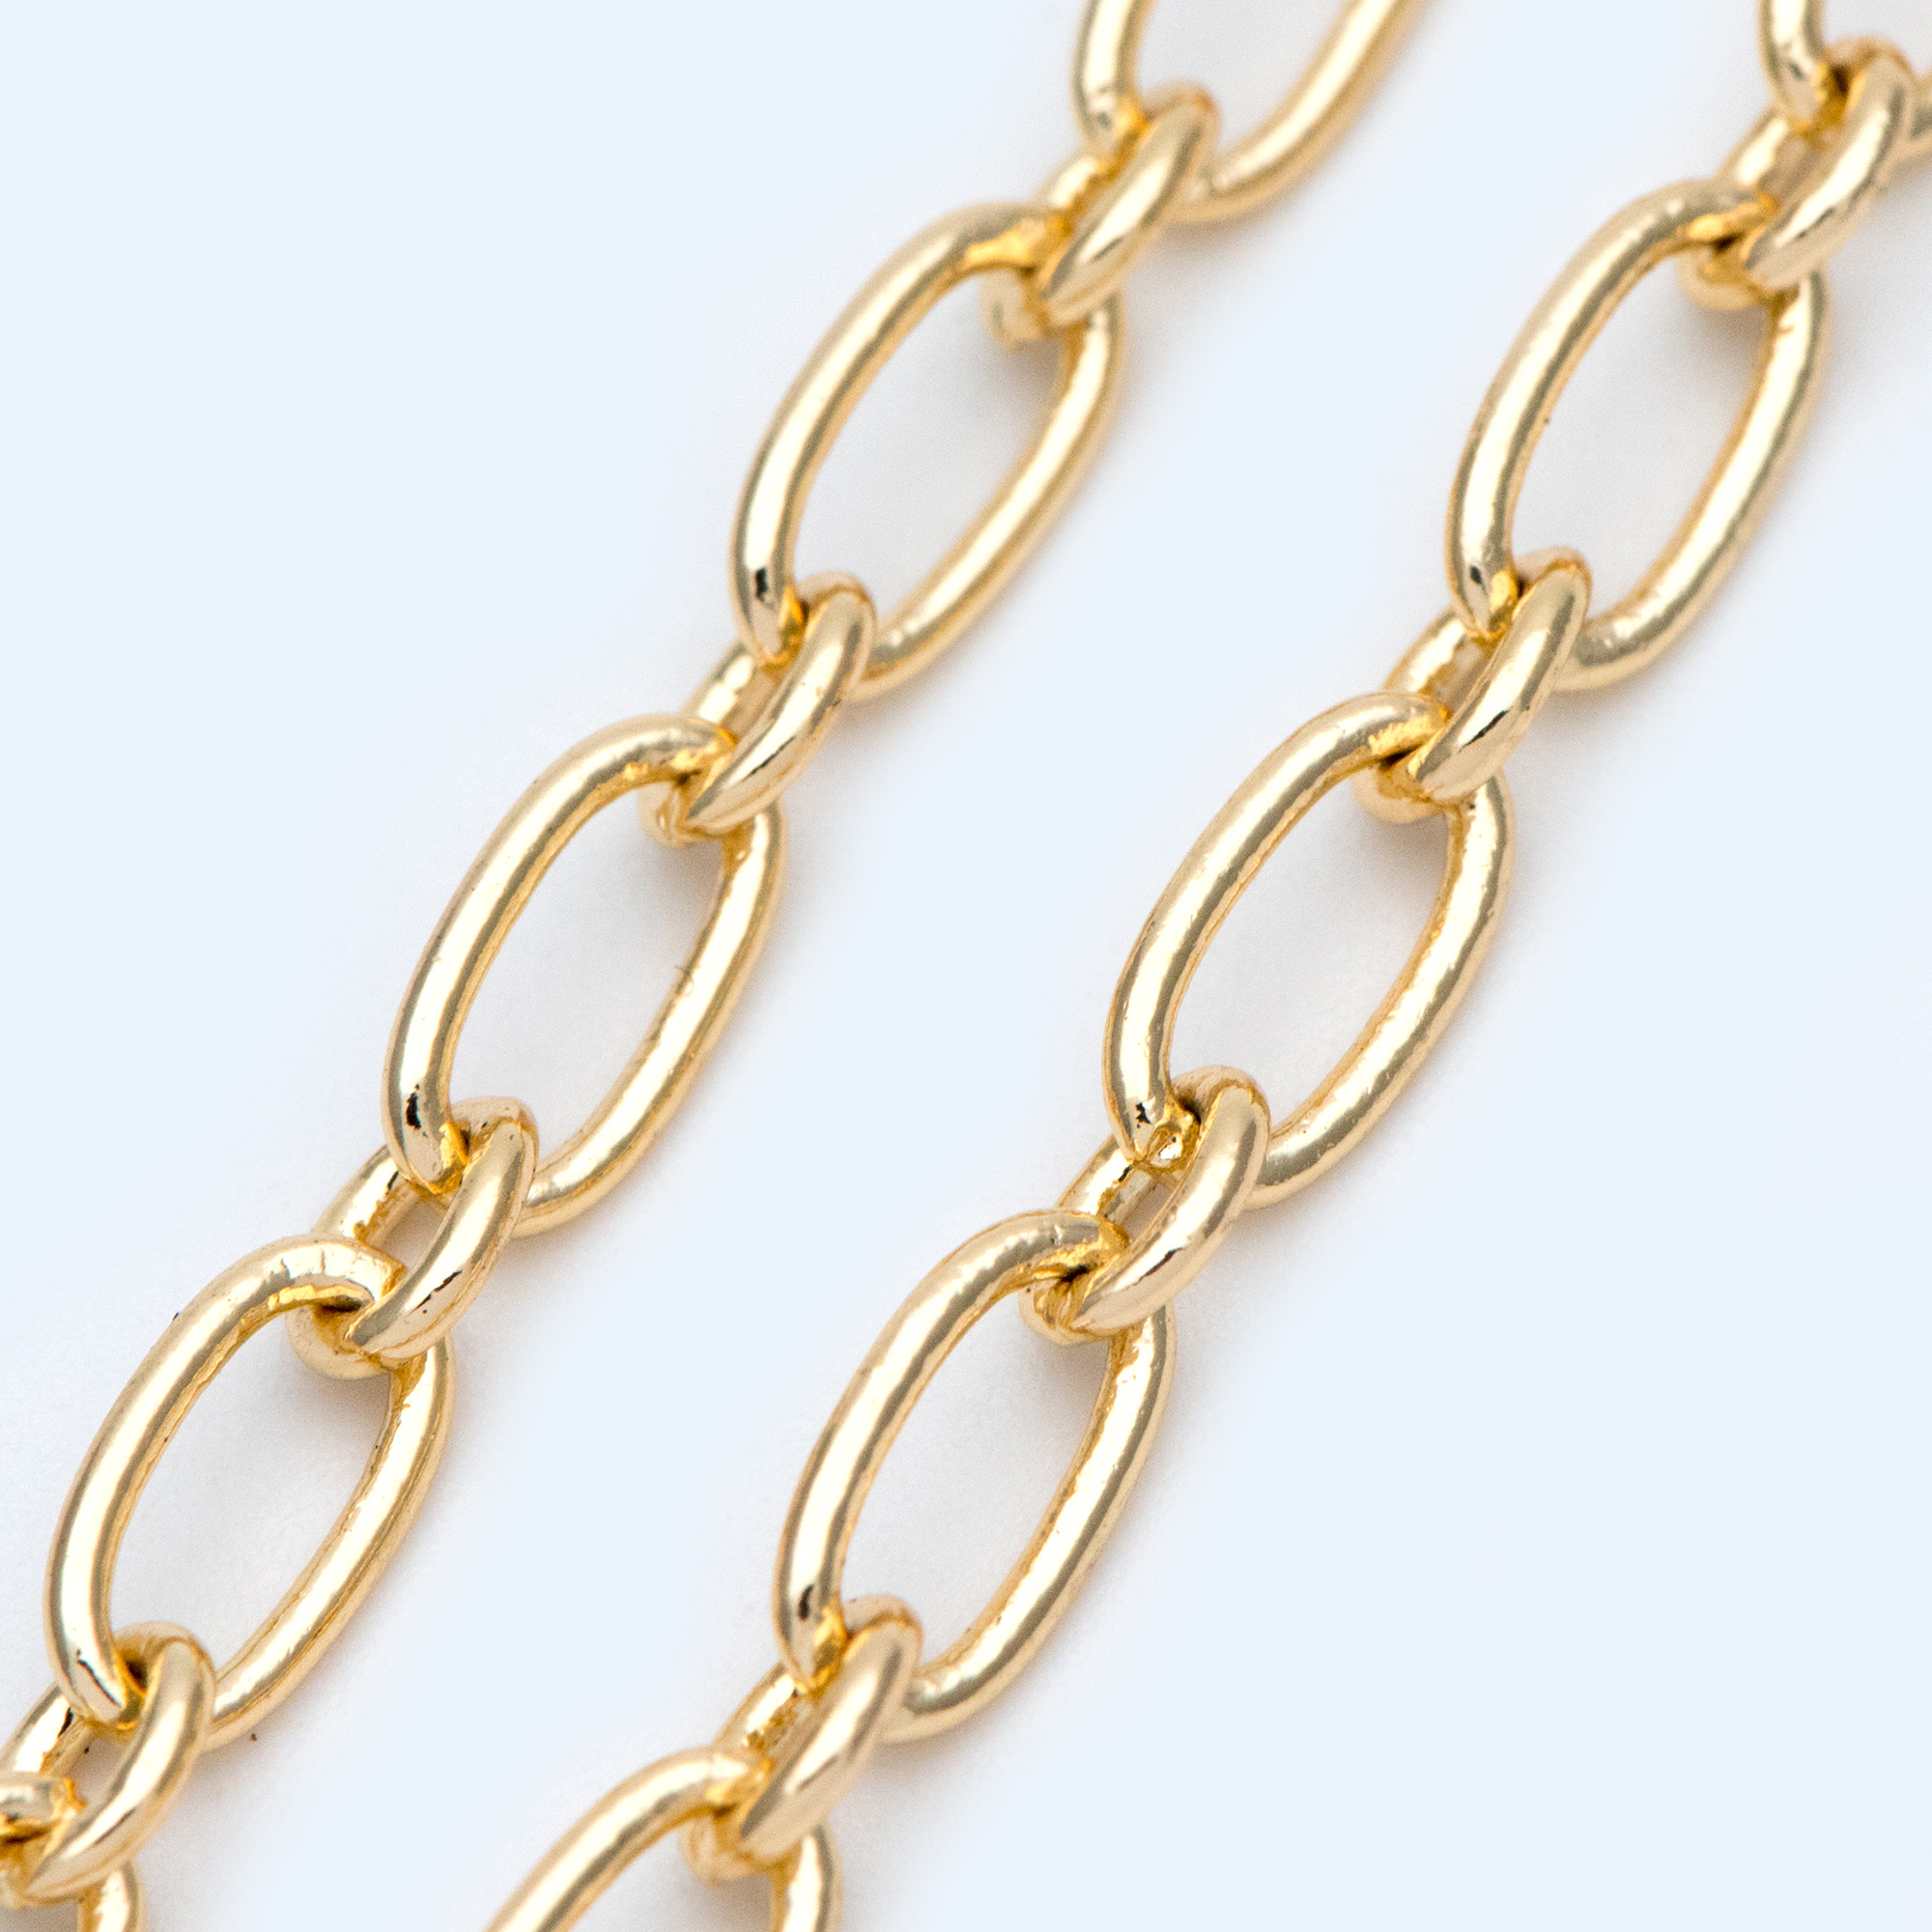 Gold Plated Brass Oval Cable Chains 4.7mm, Figaro Chain Supplies Wholesale (#LK-329)/ 1 Meter=3.3 Ft